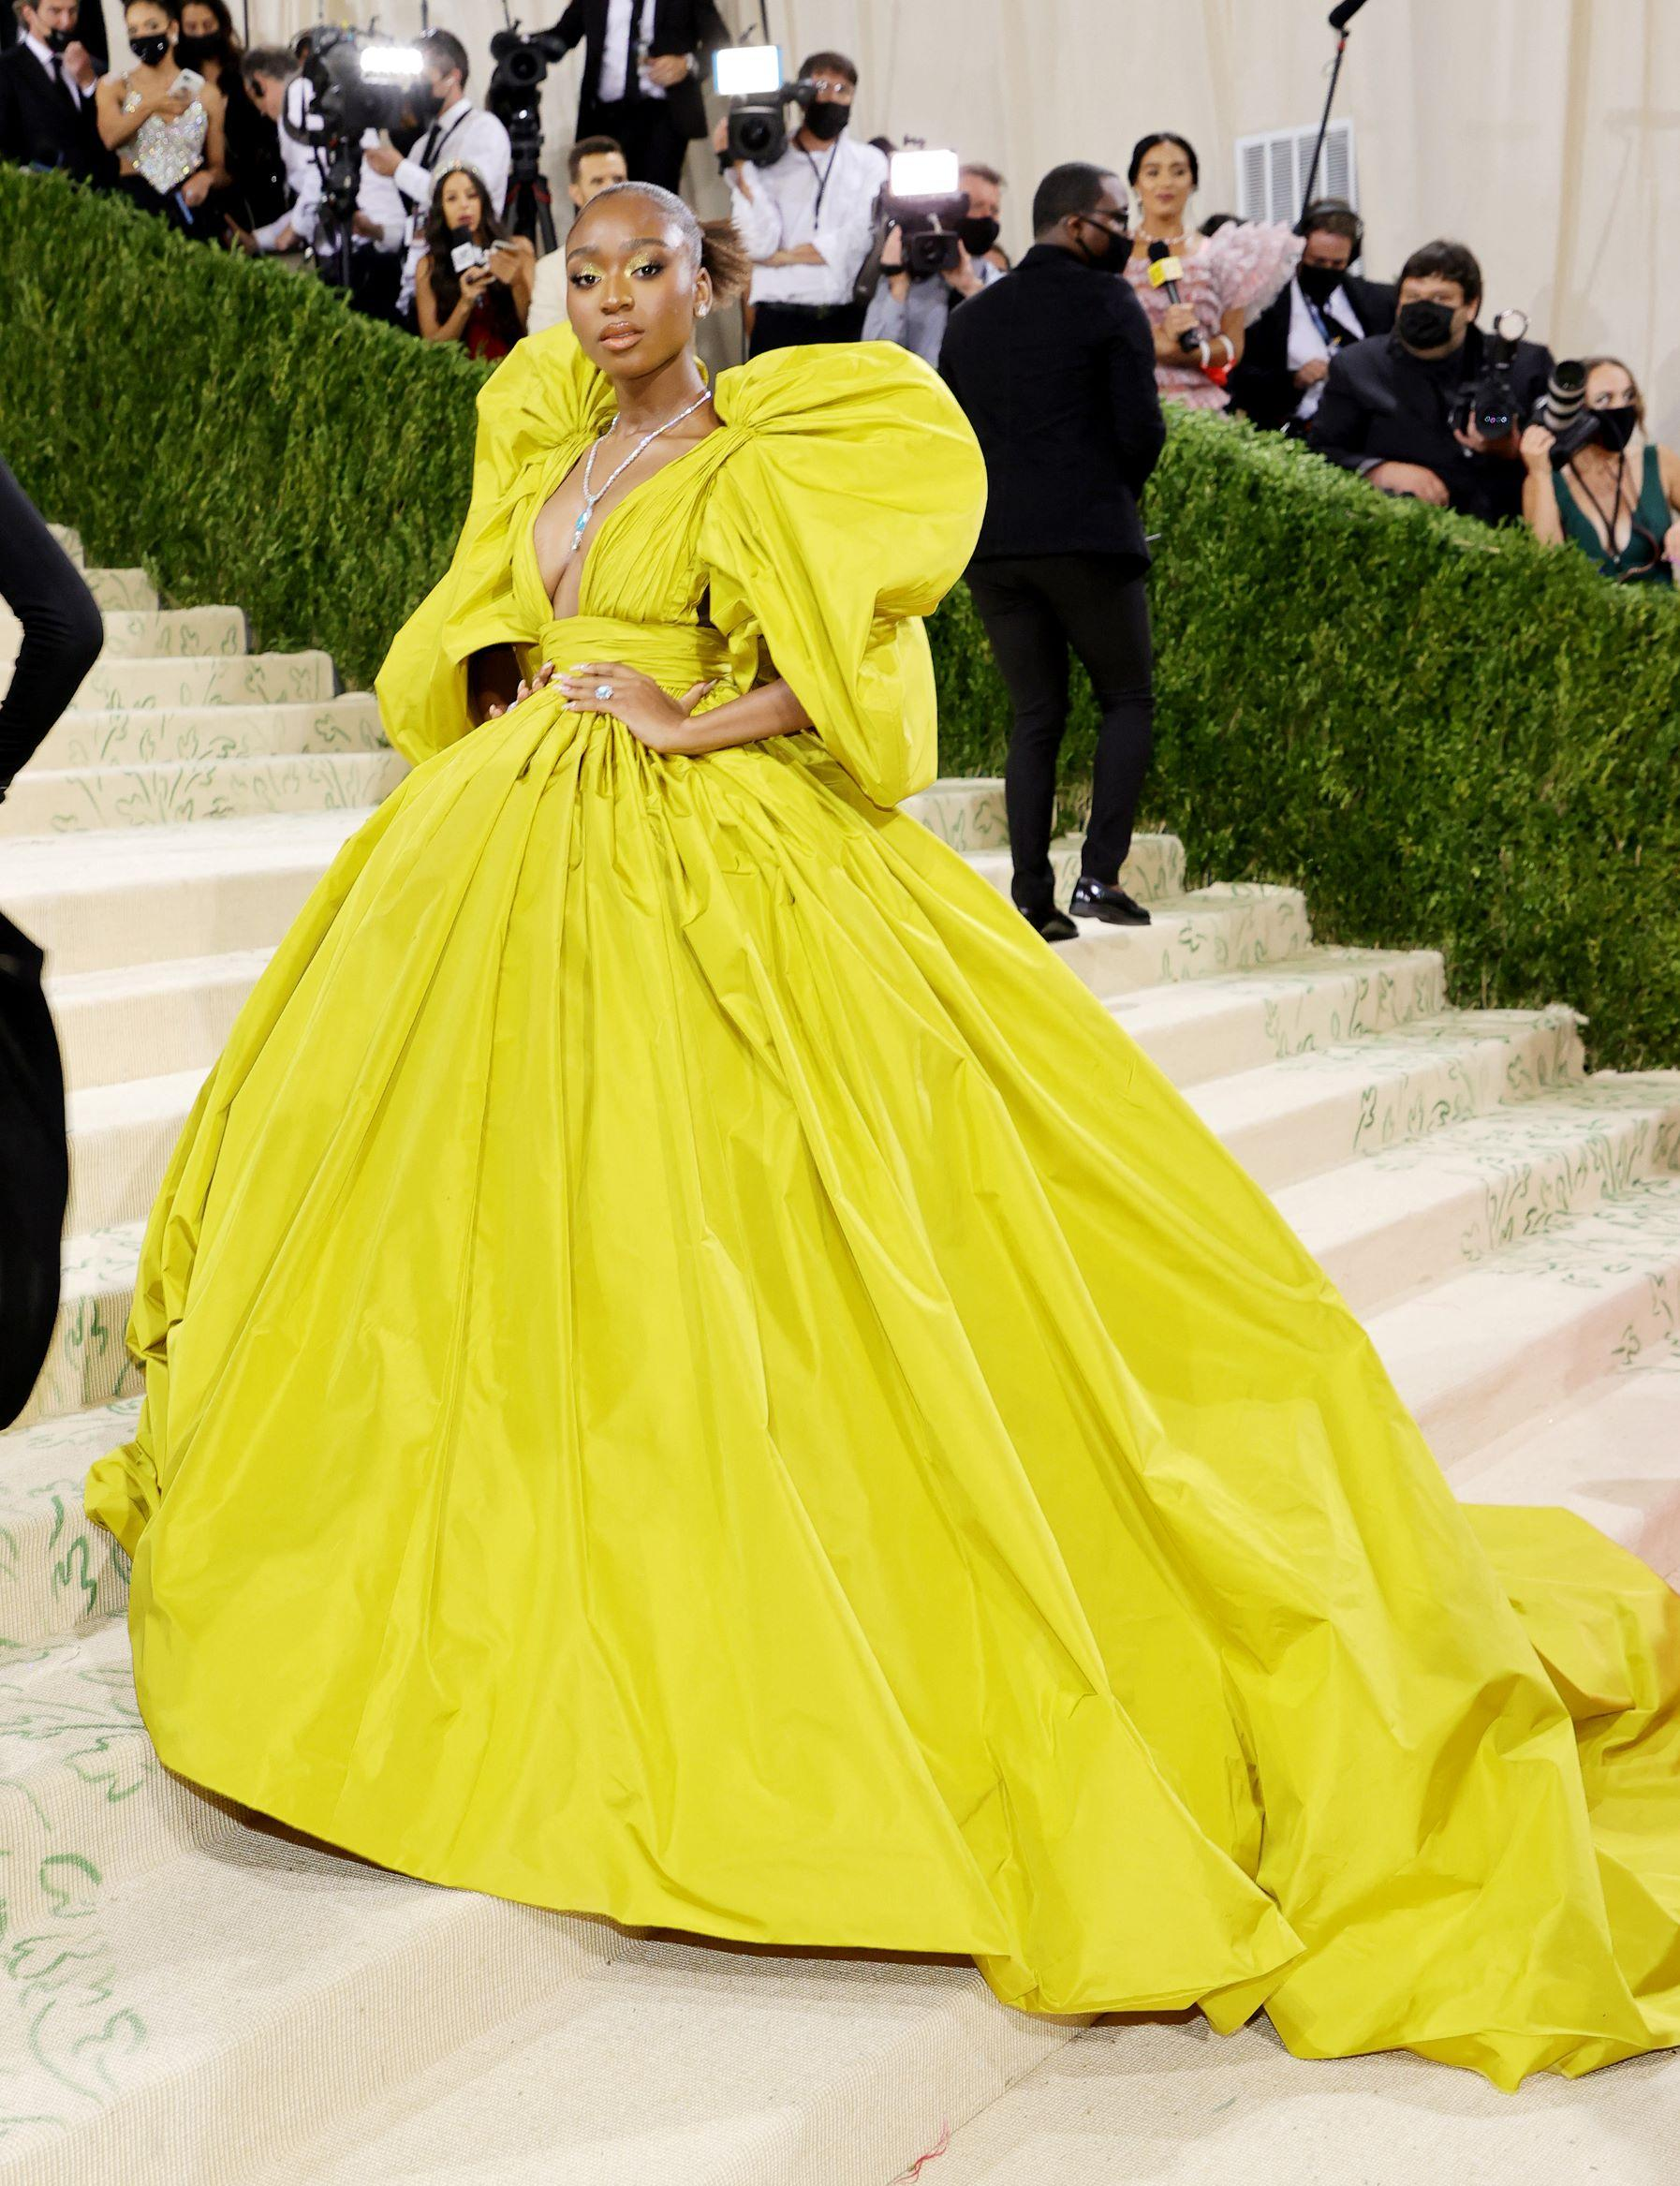 Singer Normani in her yellow Valentino gown. Photo: Mike Coppola/Getty Images North America/Getty Images via AFP